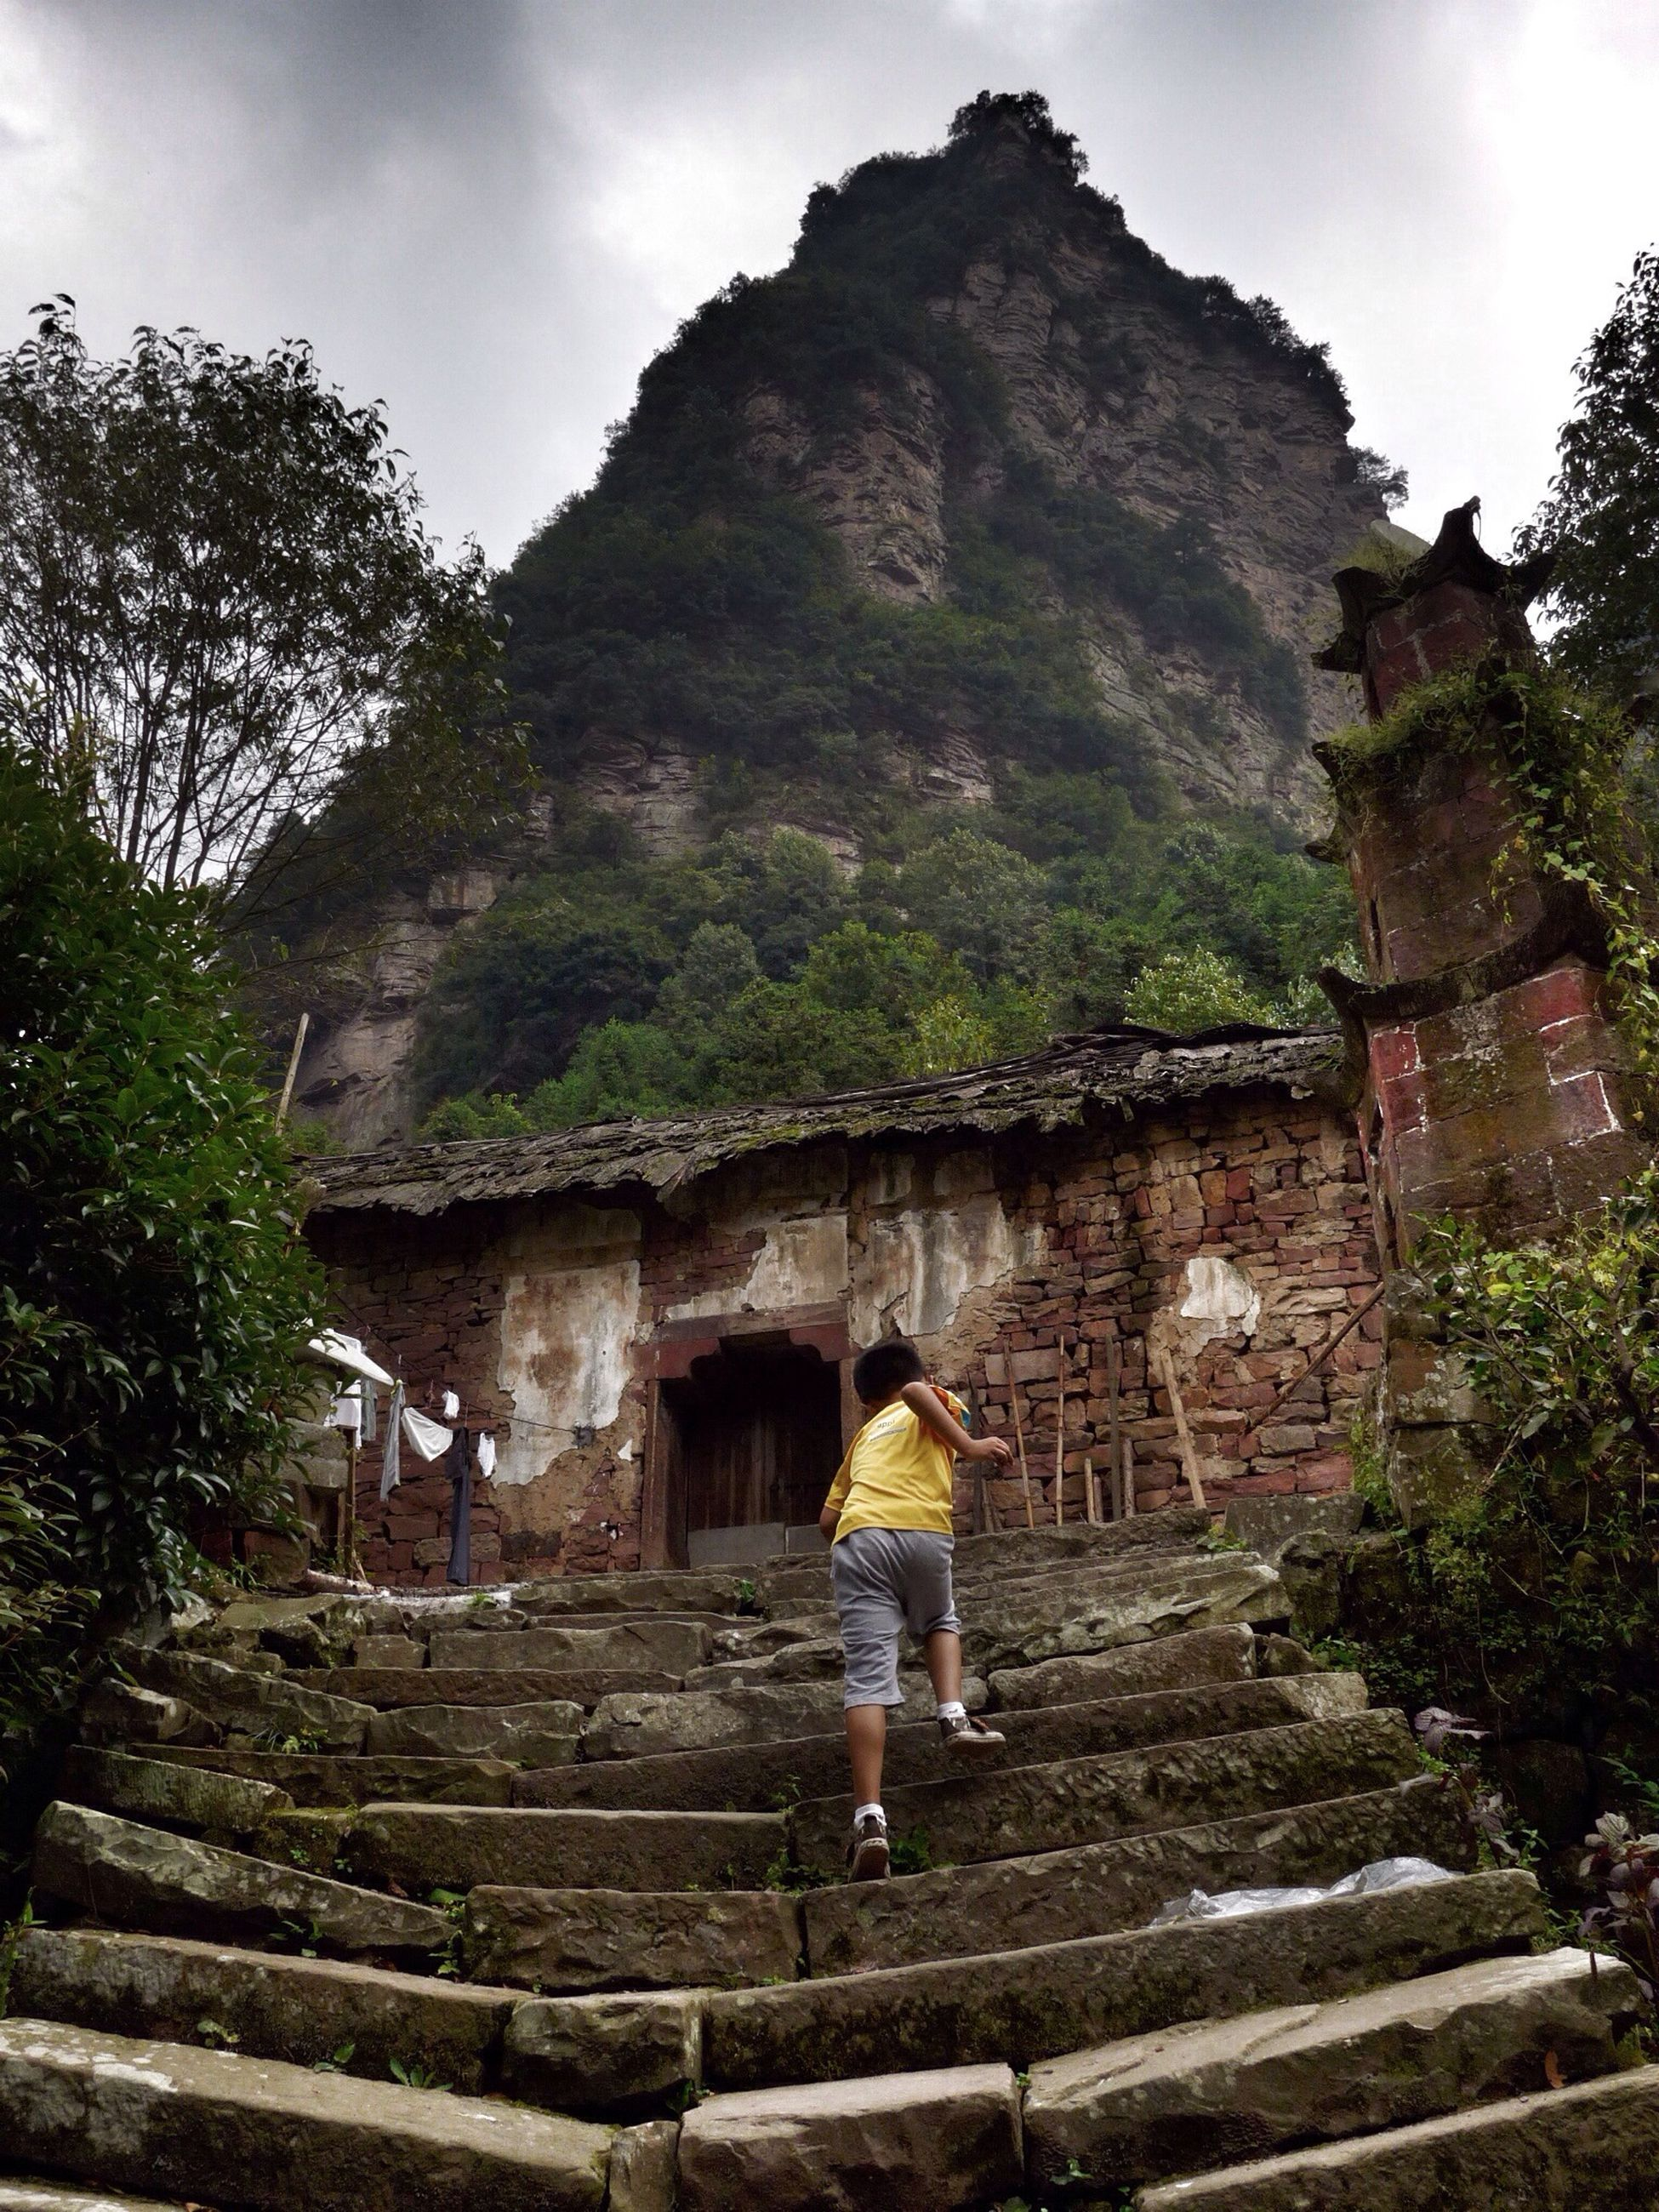 lifestyles, built structure, leisure activity, sky, men, architecture, tree, full length, old, person, abandoned, rear view, mountain, building exterior, steps, rock - object, old ruin, obsolete